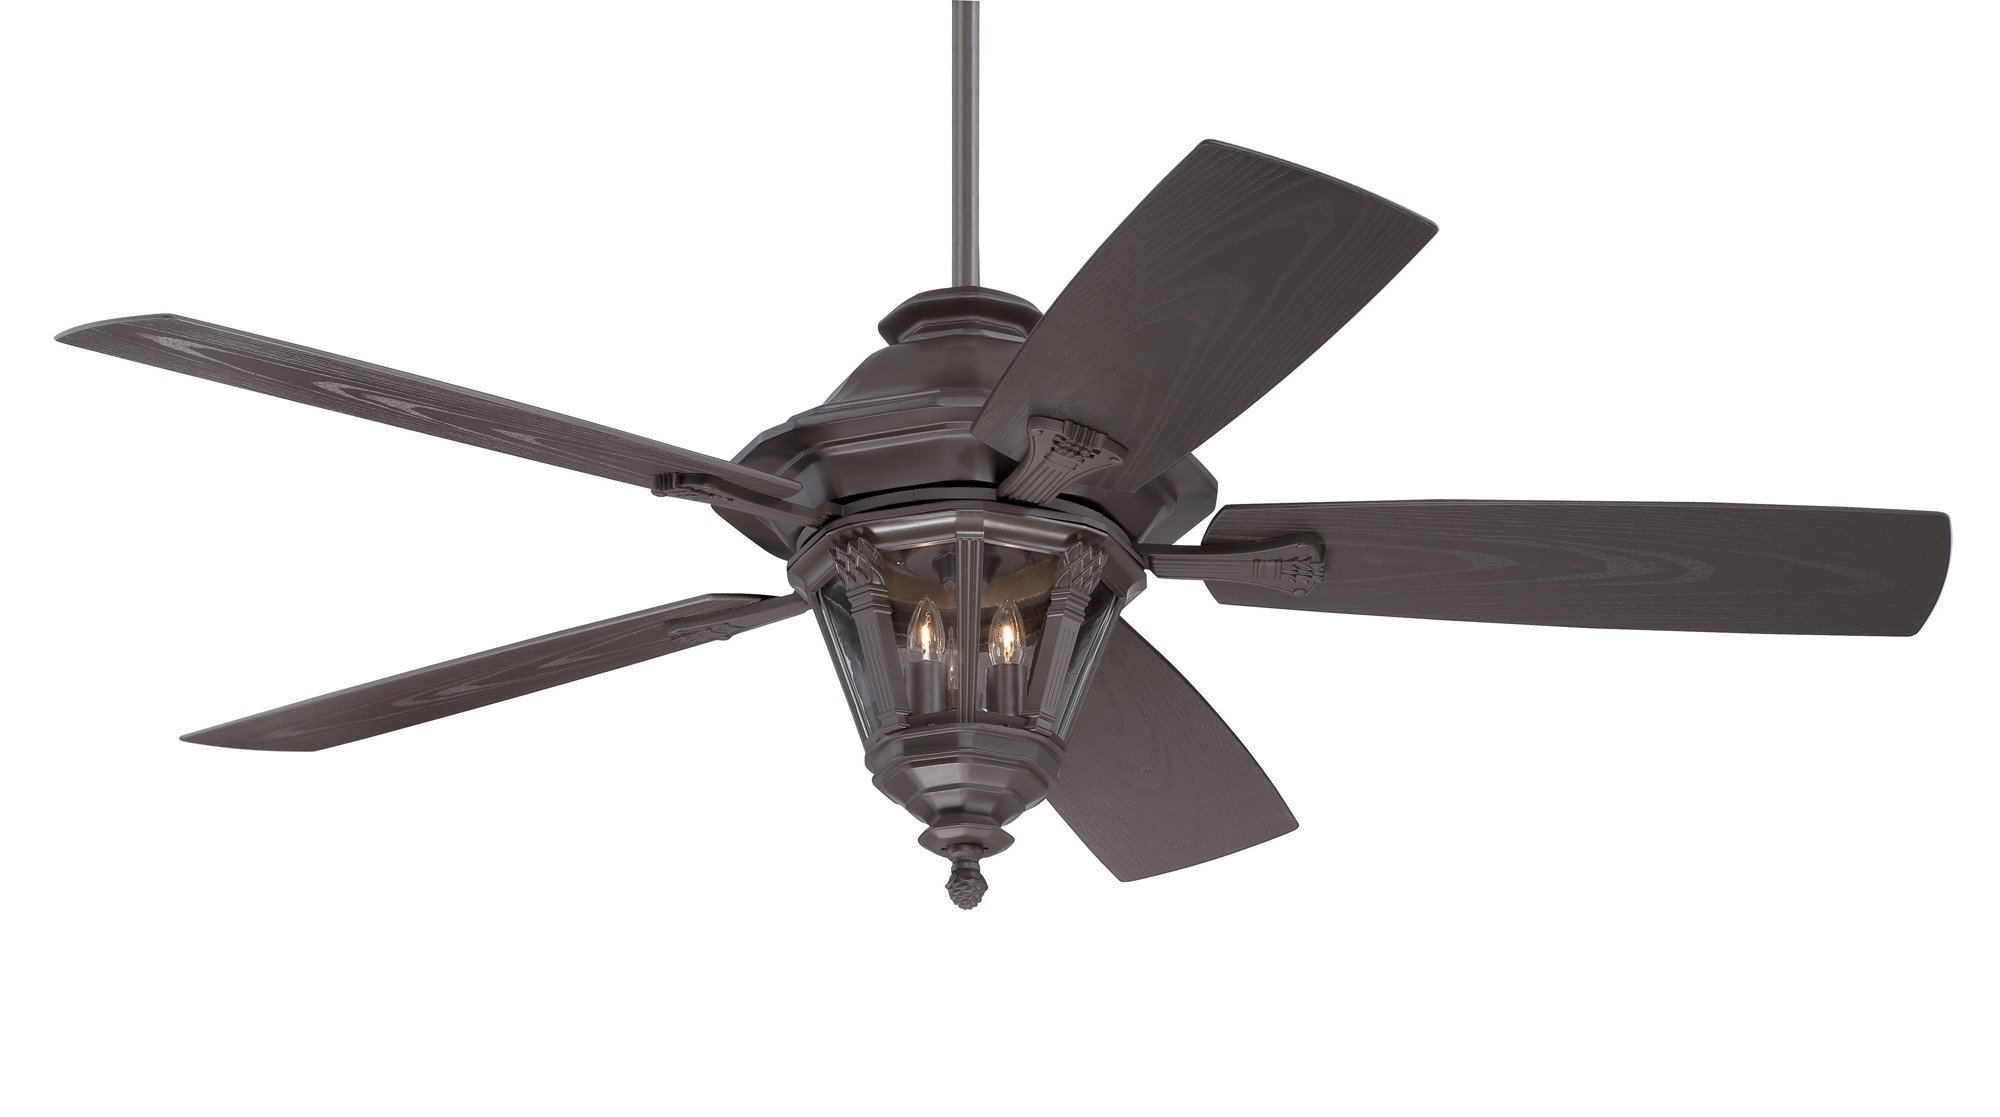 Ceiling: Interesting Vertical Ceiling Fans Ceiling Fan Vertical For Most Up To Date Vertical Outdoor Ceiling Fans (Gallery 3 of 20)